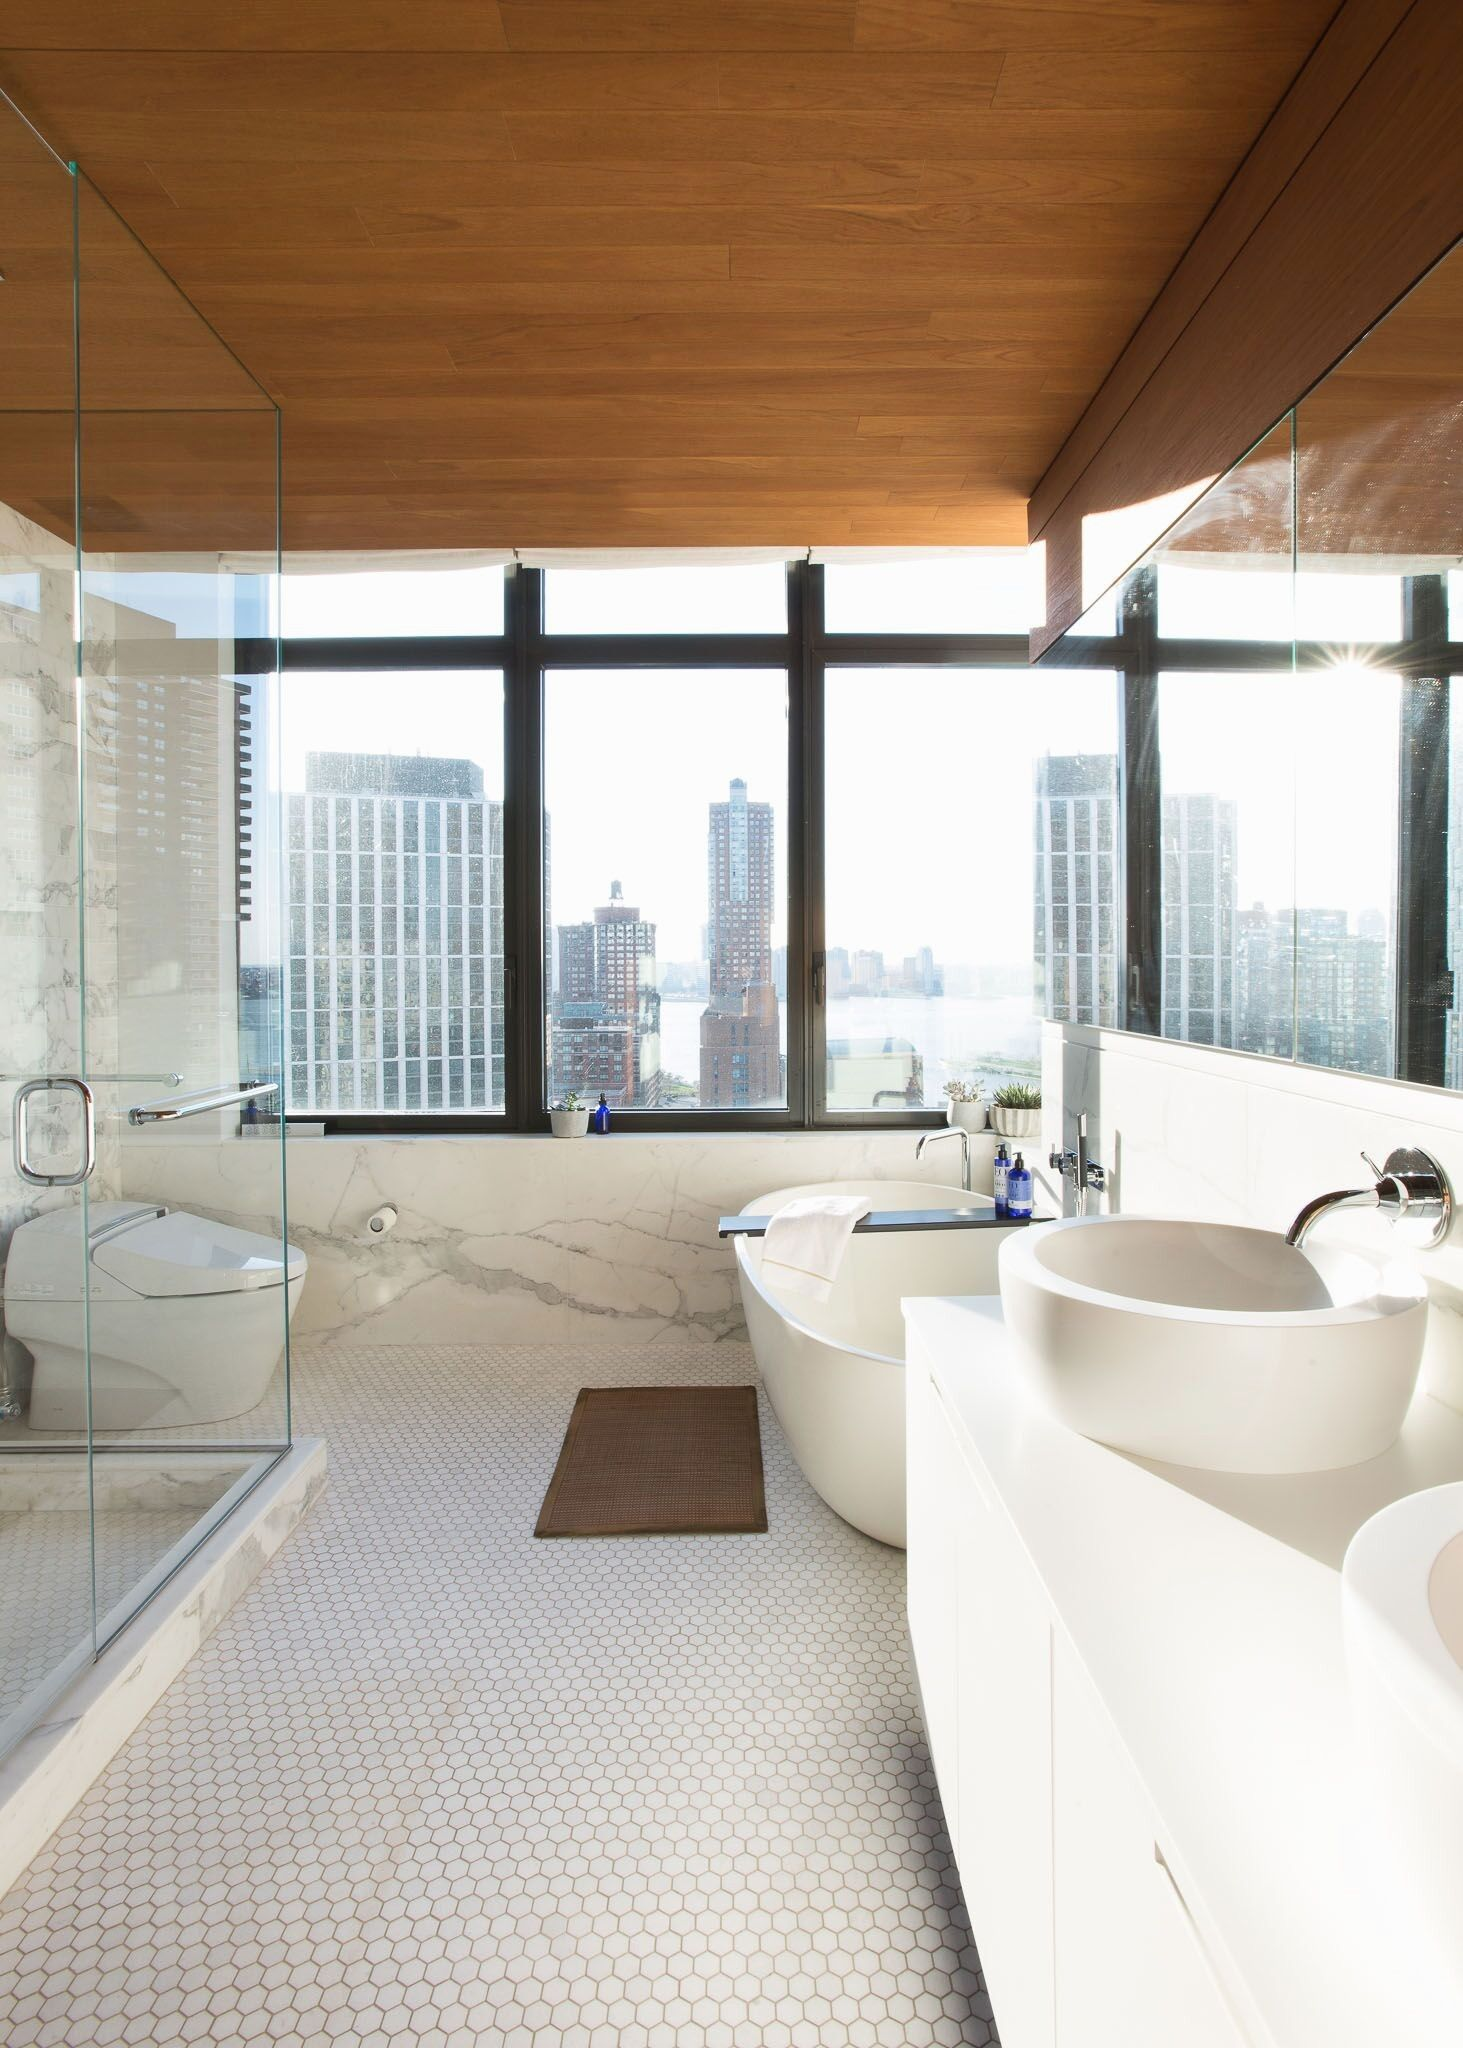 50 Images How Much Does Bathroom Remodel Cost With Images Bathroom Remodel Cost Bathroom Design Elegant Bathroom